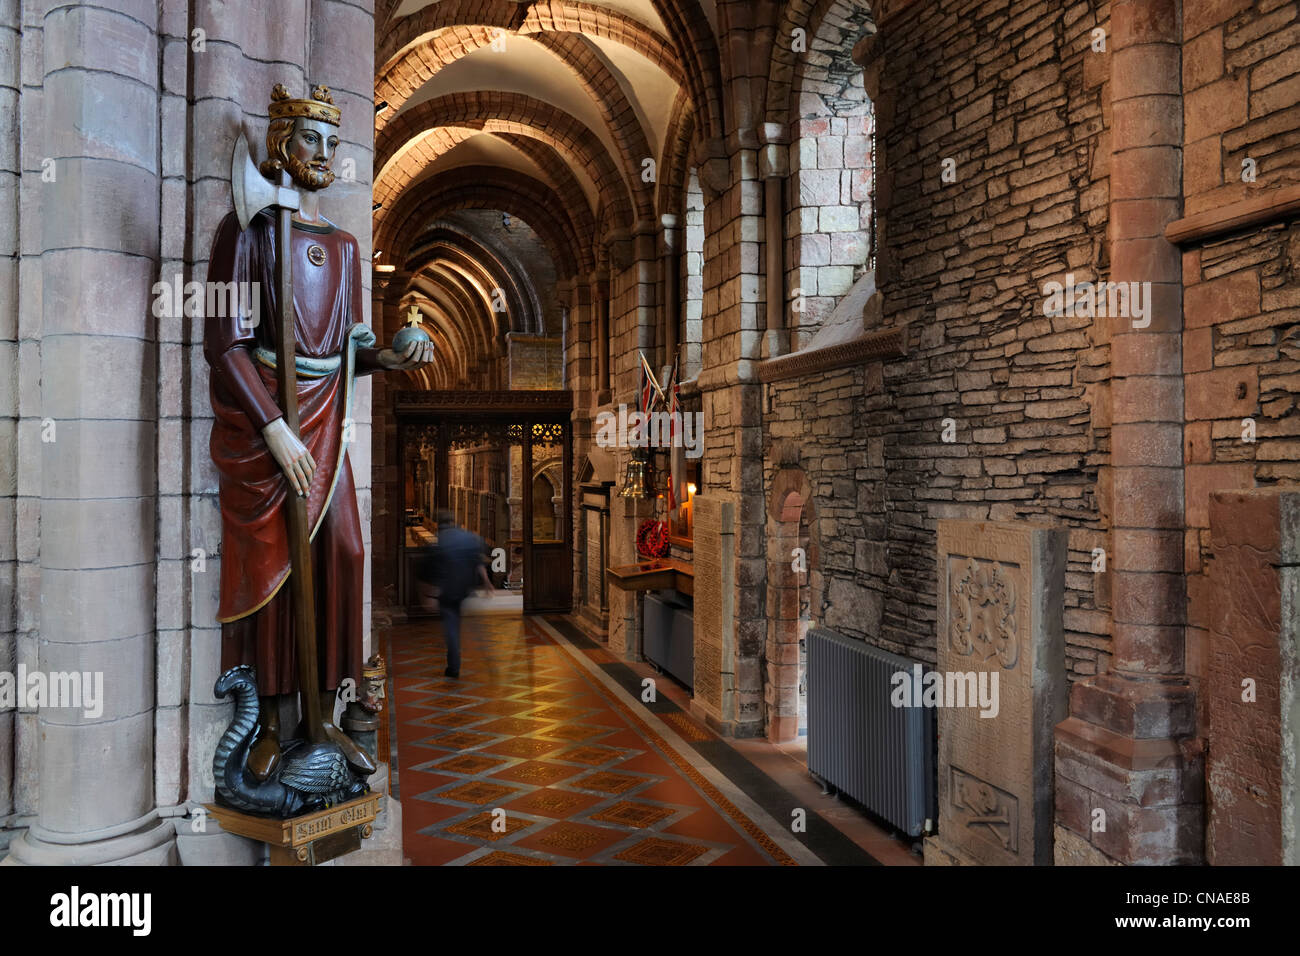 United Kingdom, Scotland, Orkney Islands, Mainland, town of Kirkwall, Saint-Magnus cathedral, Saint Olaf - Stock Image